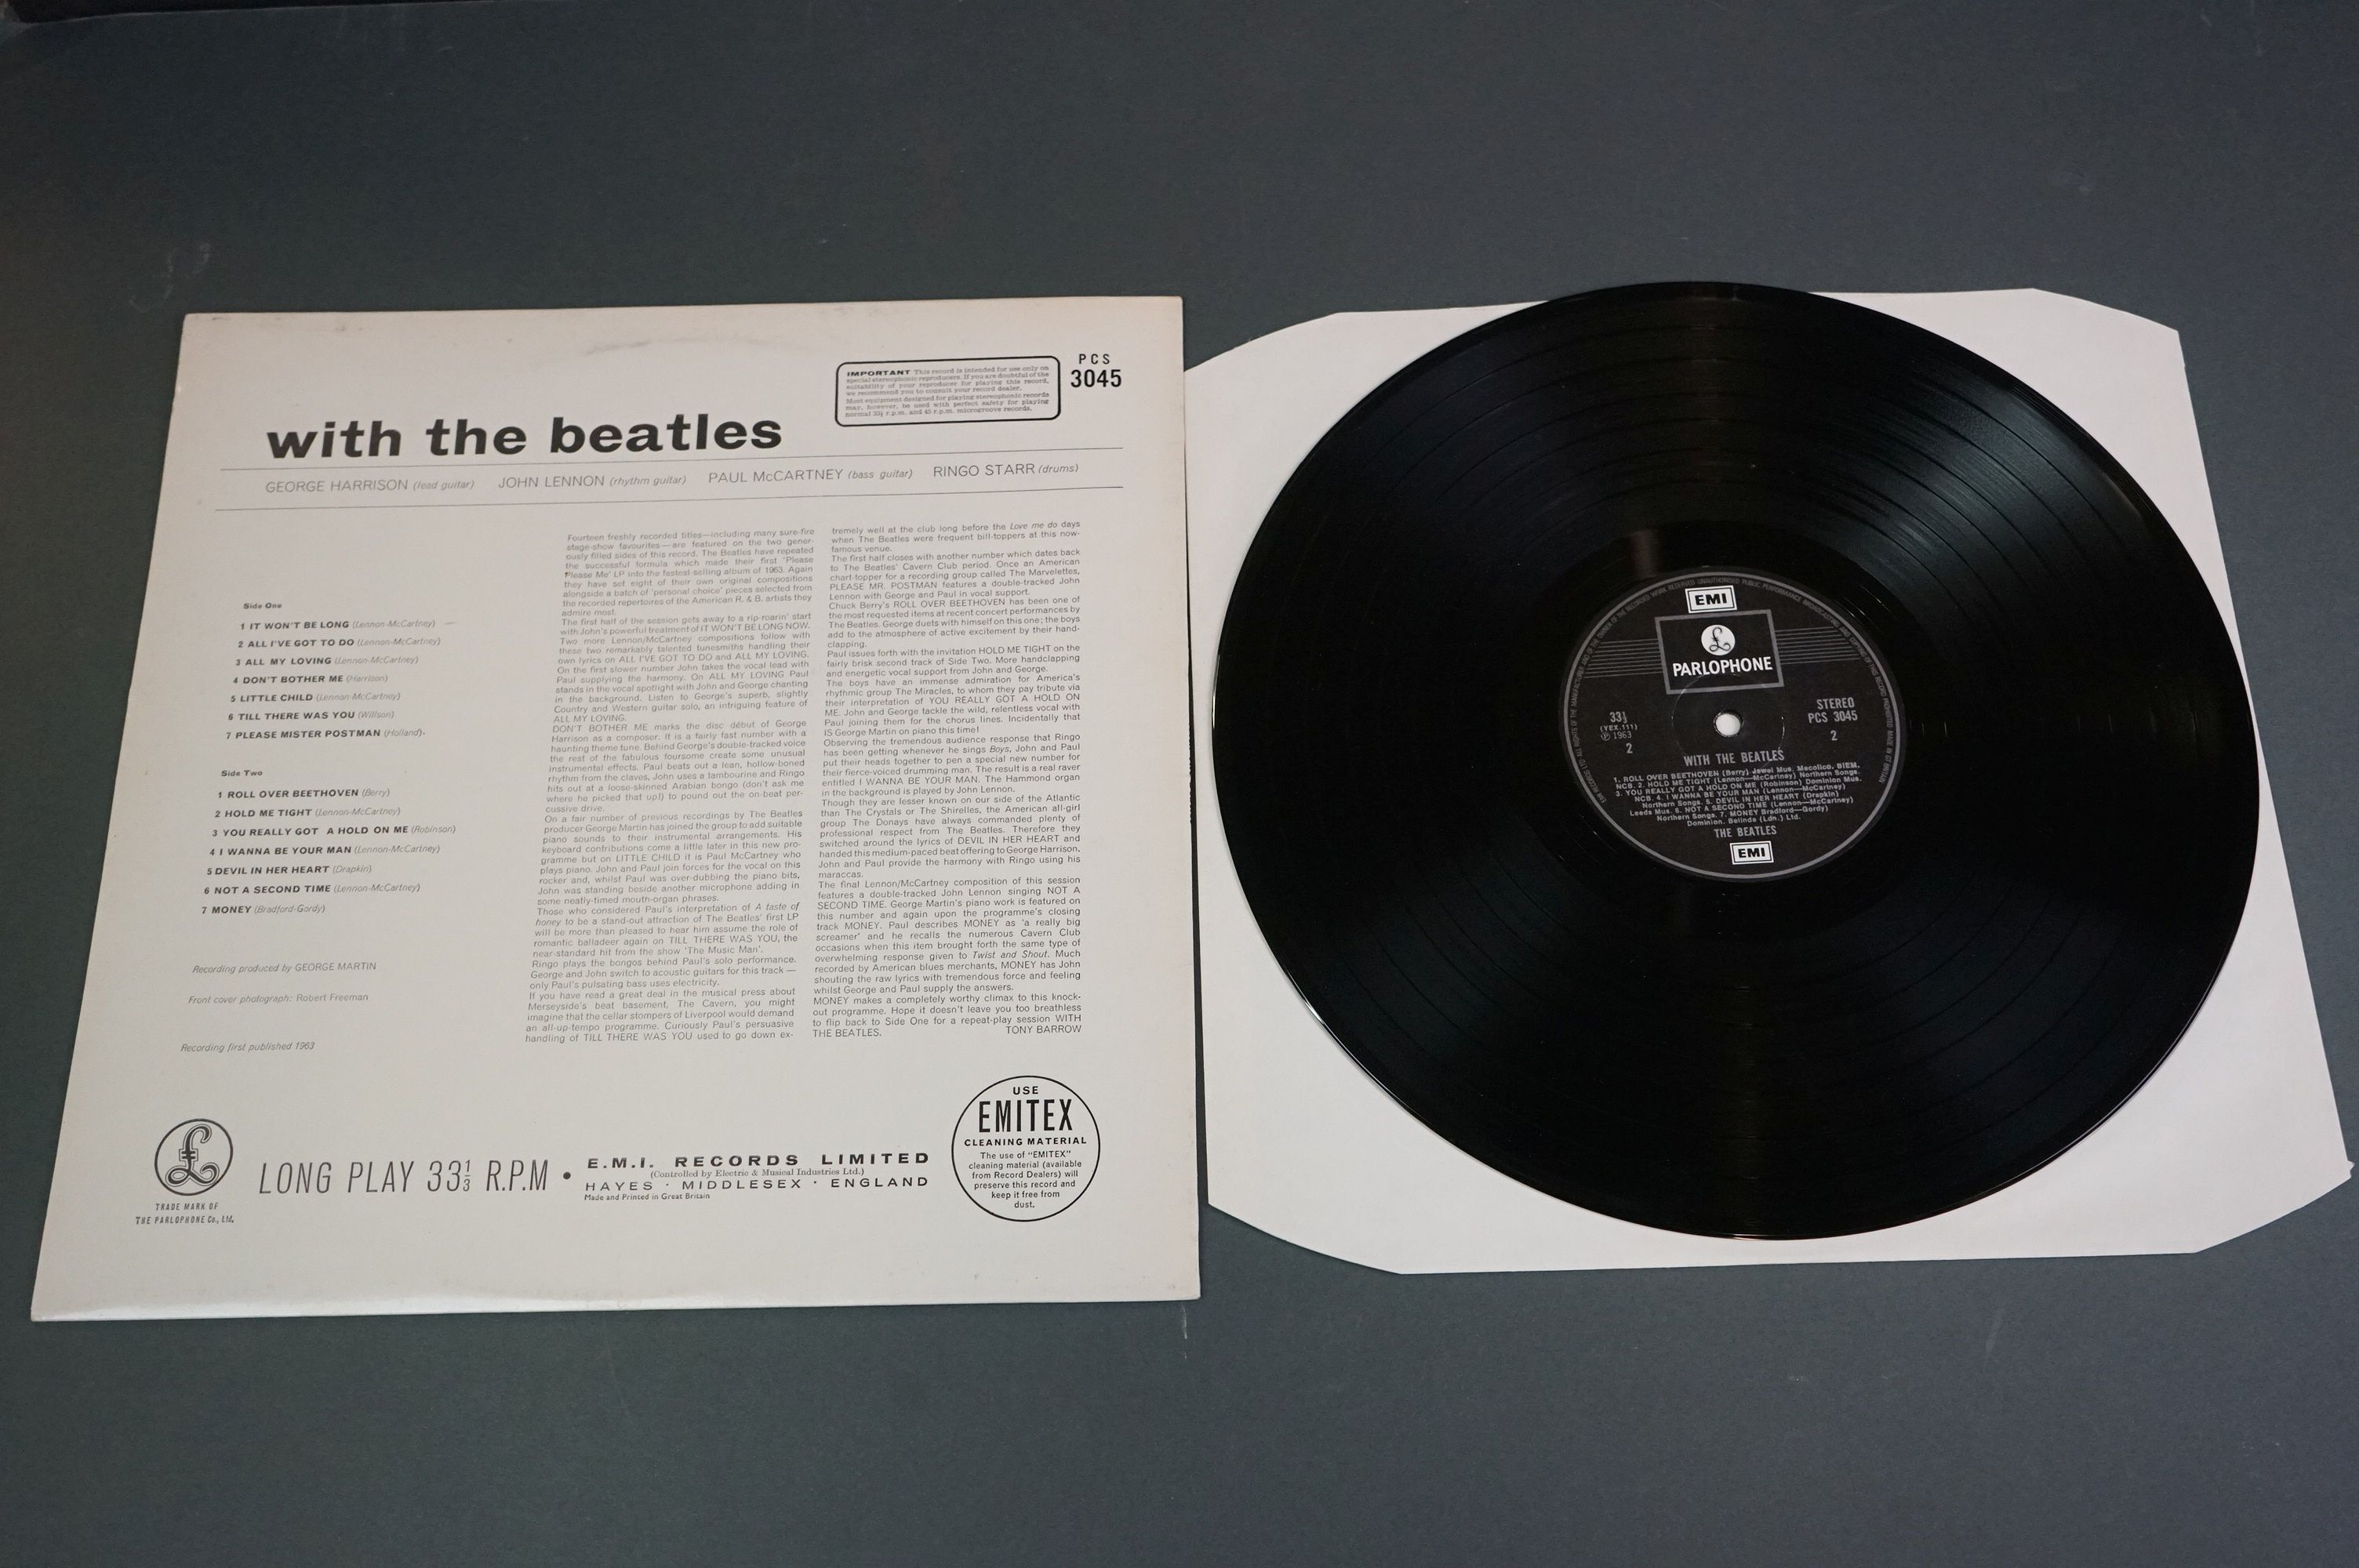 Vinyl - The Beatles With The Beatles x 2 copies to include PMC 1206, The Parlophone Co Ltd to - Image 6 of 6